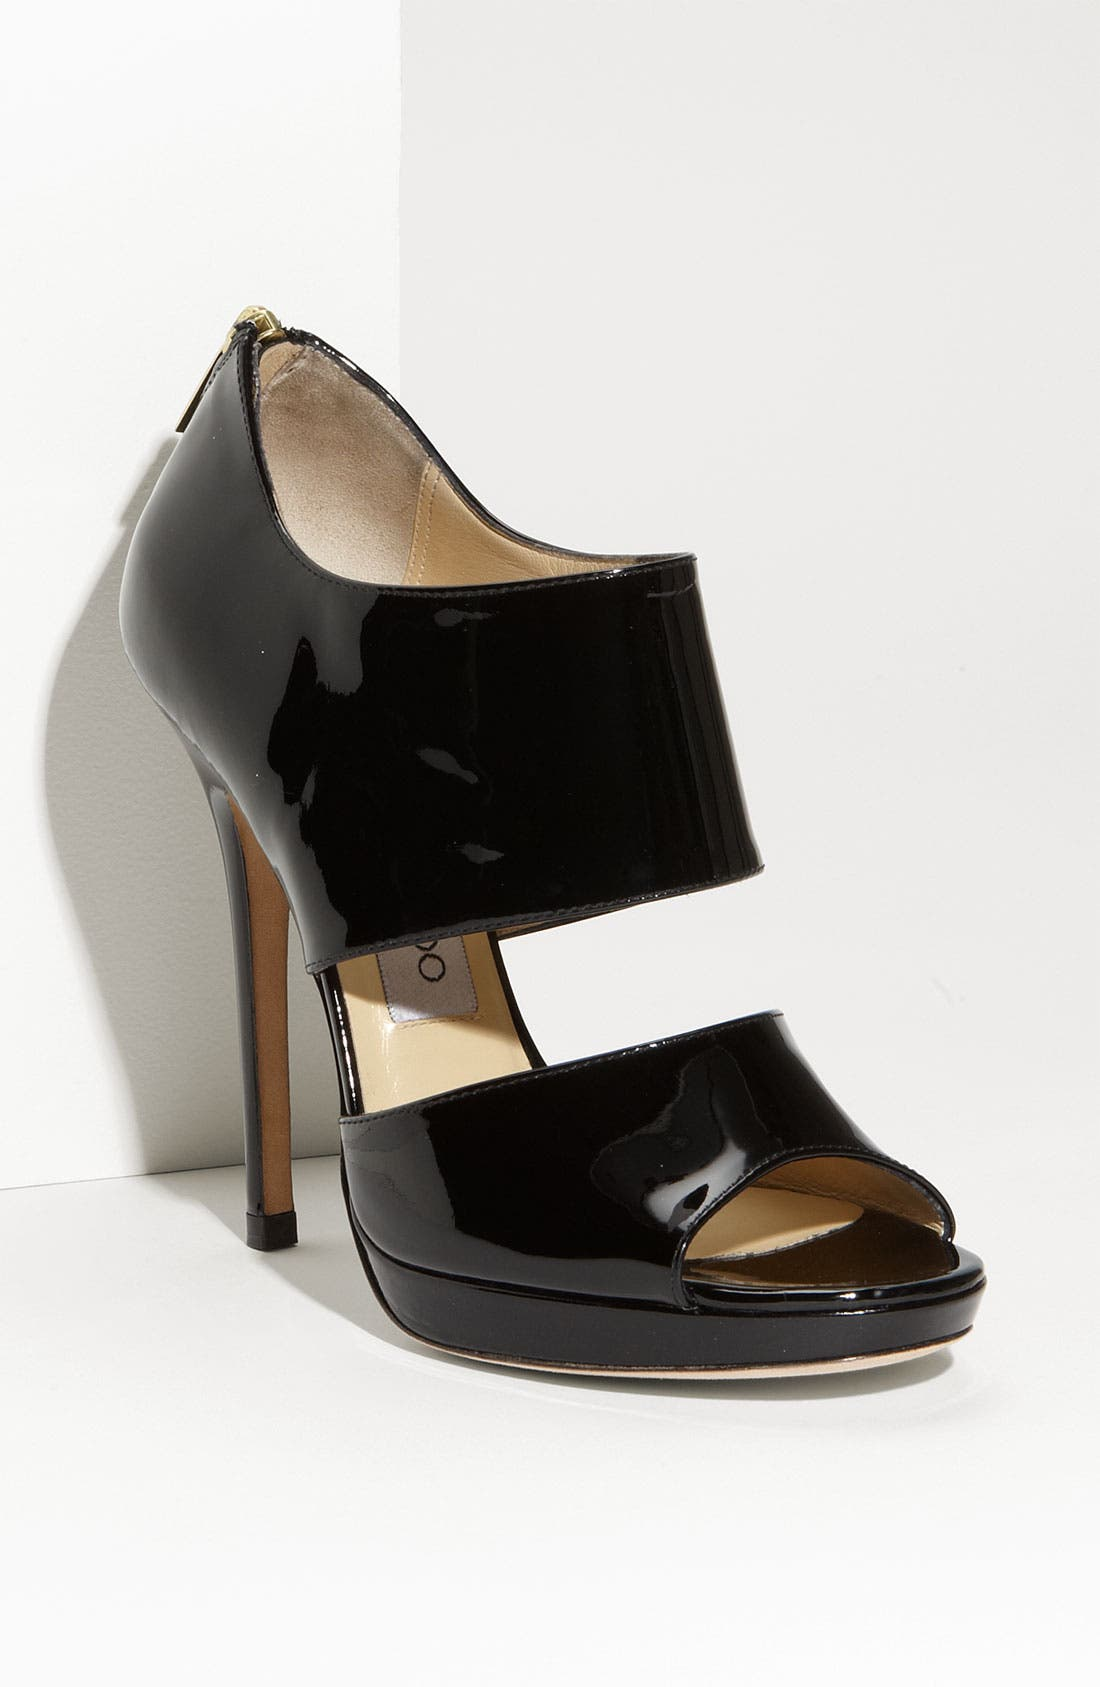 Main Image - Jimmy Choo 'Private' Cuff Patent Leather Sandal